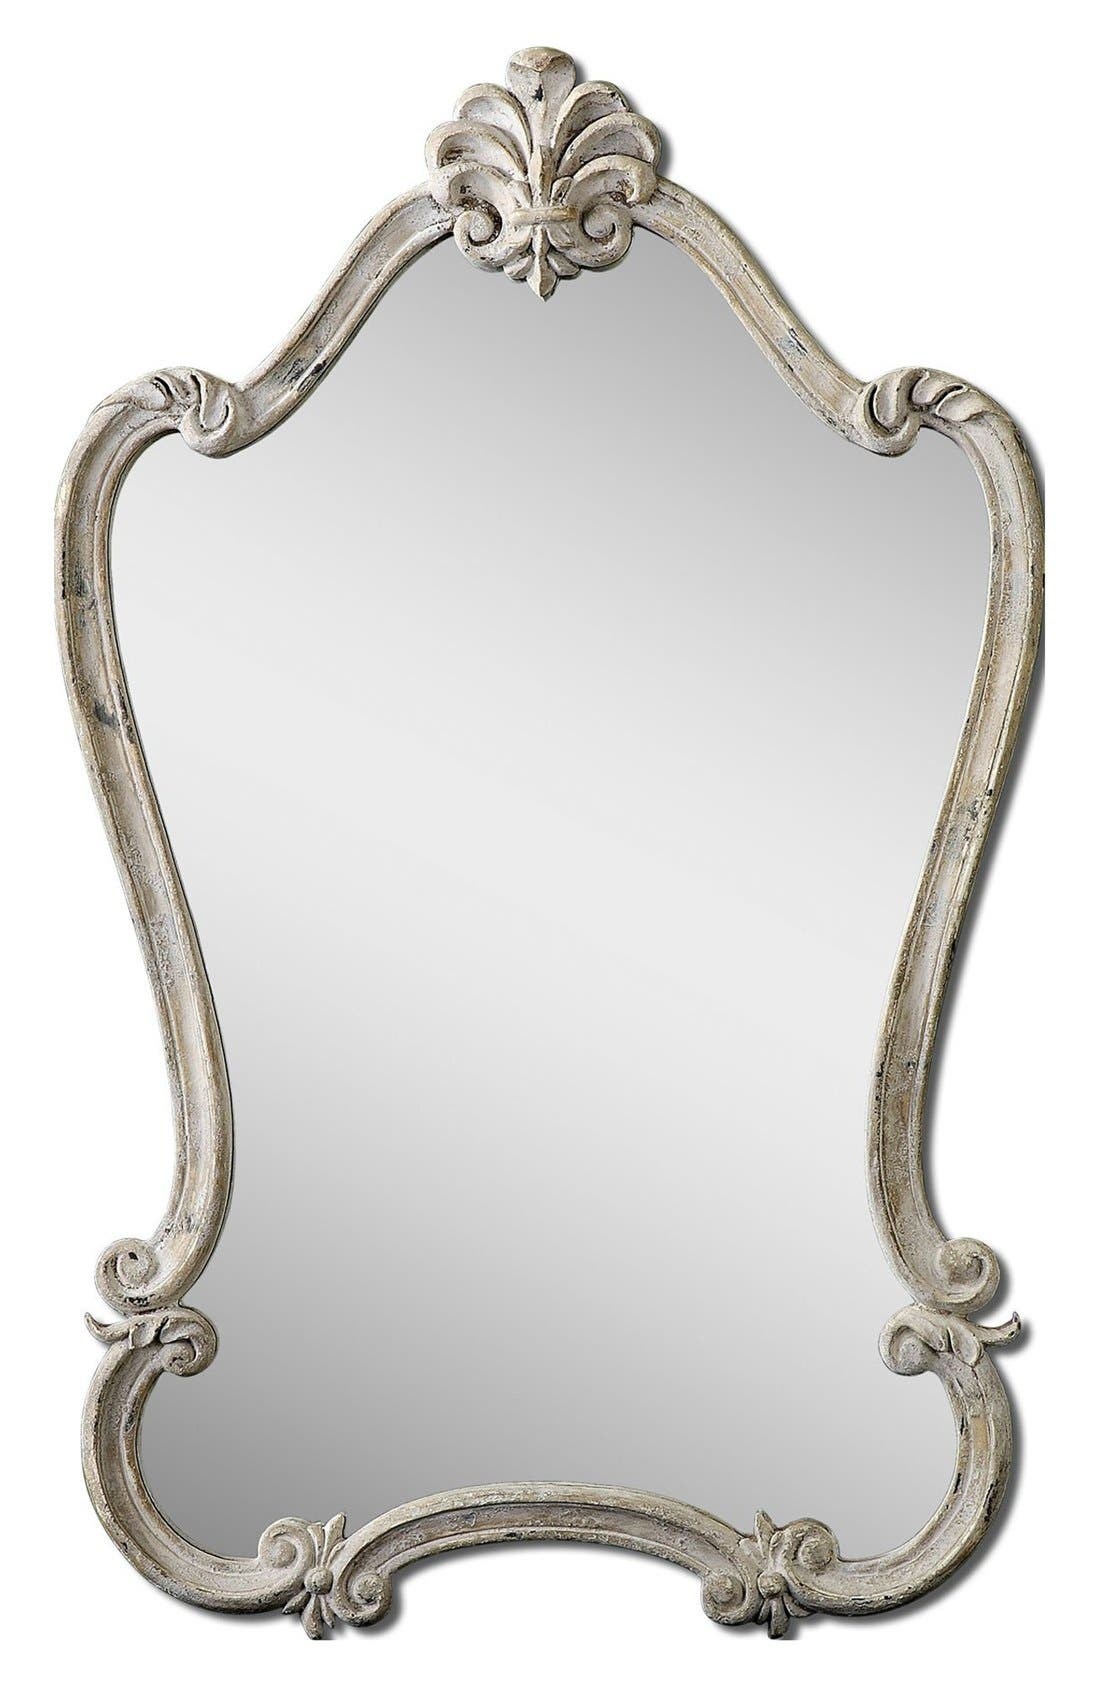 Alternate Image 1 Selected - Uttermost 'Walton Hall' Antique White Vanity Mirror